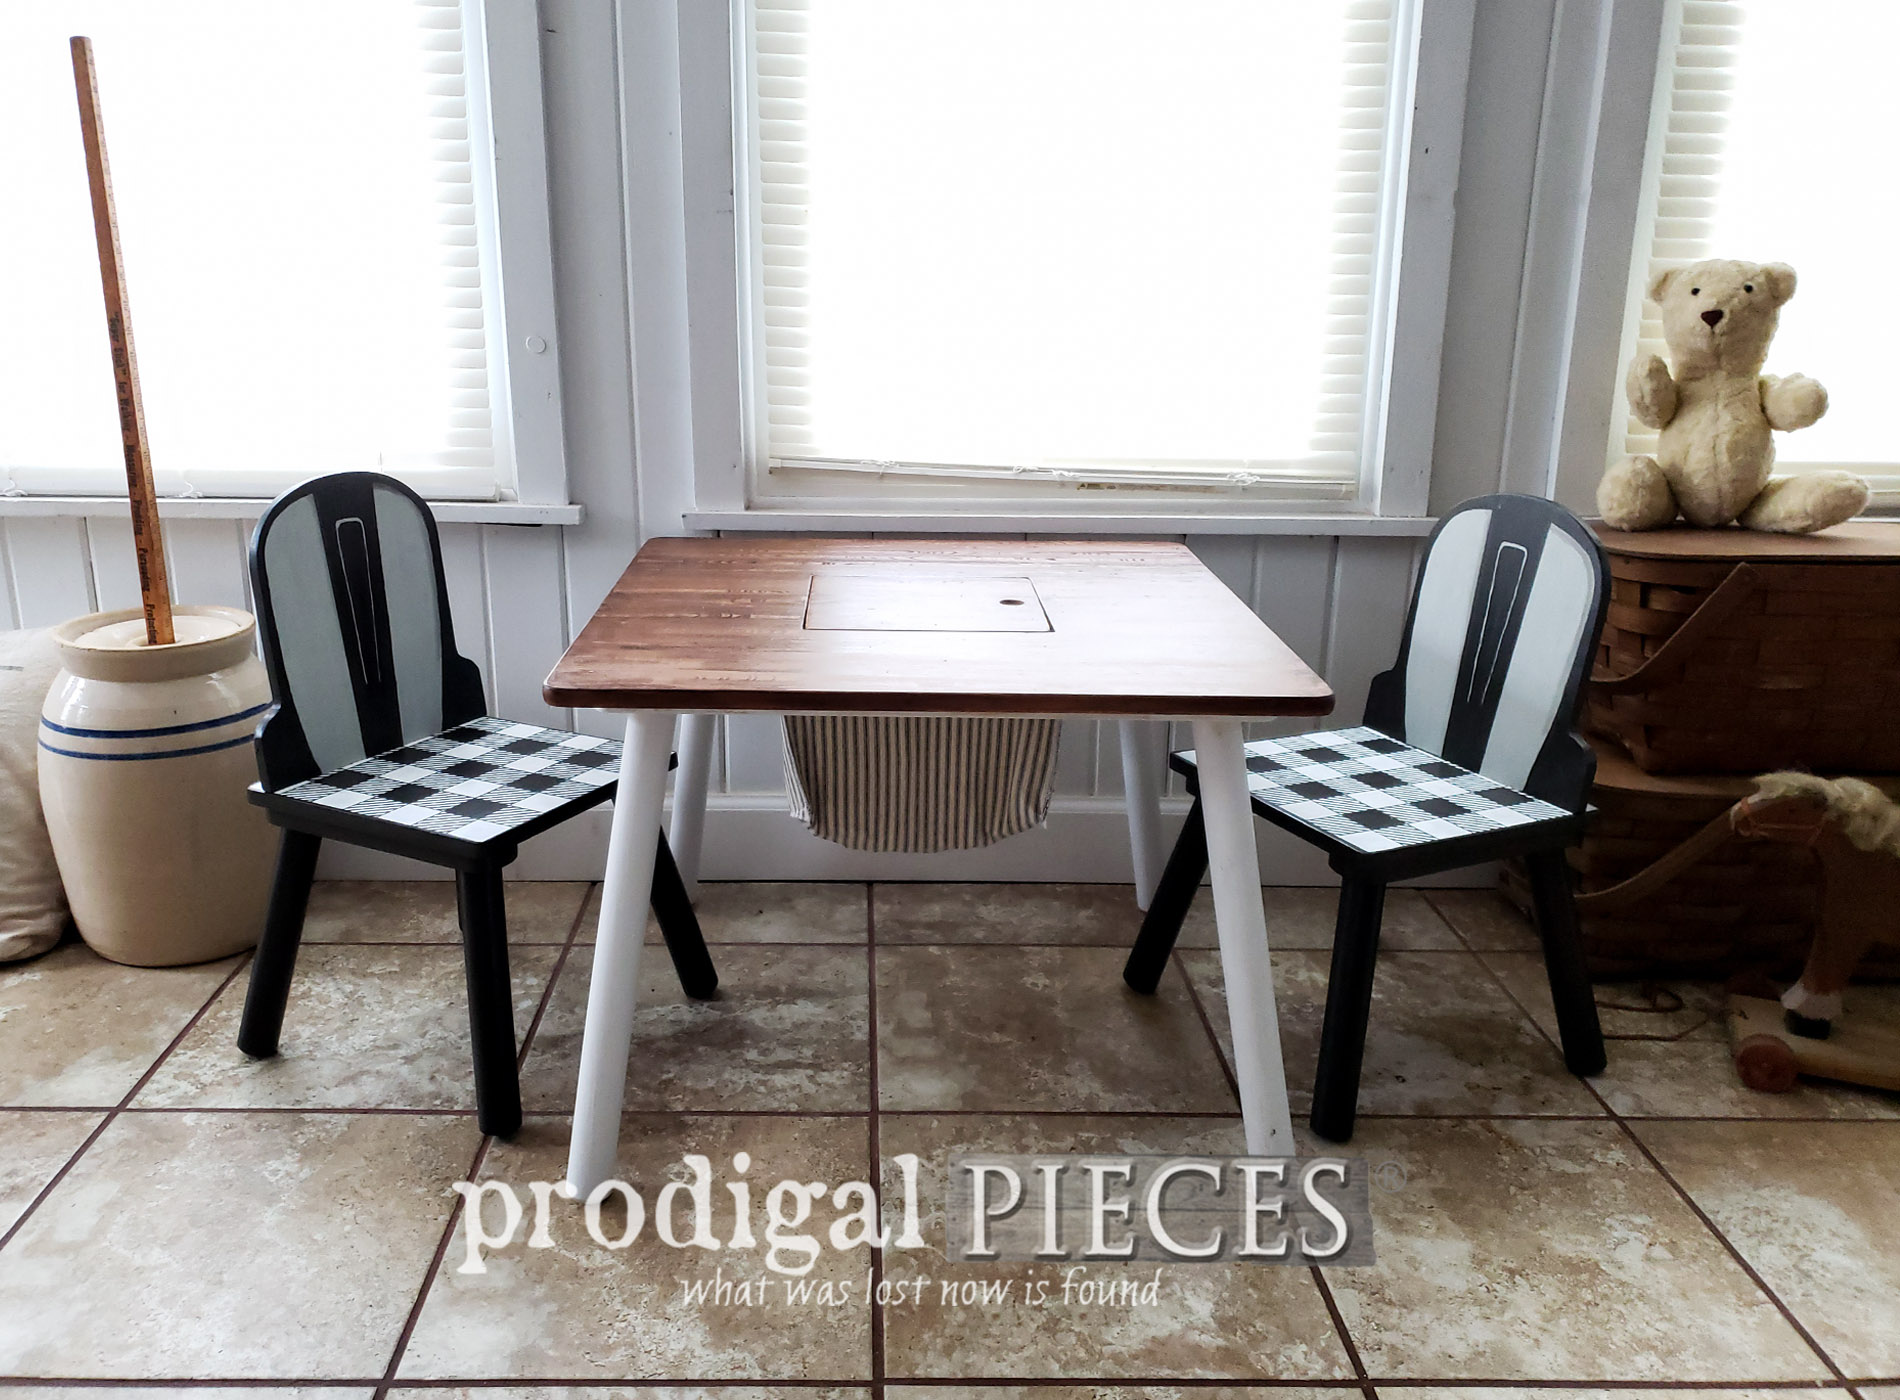 Featured Kids Play Table get Modern Farmhouse Makeover by Larissa of Prodigal Pieces | prodigalpieces.com